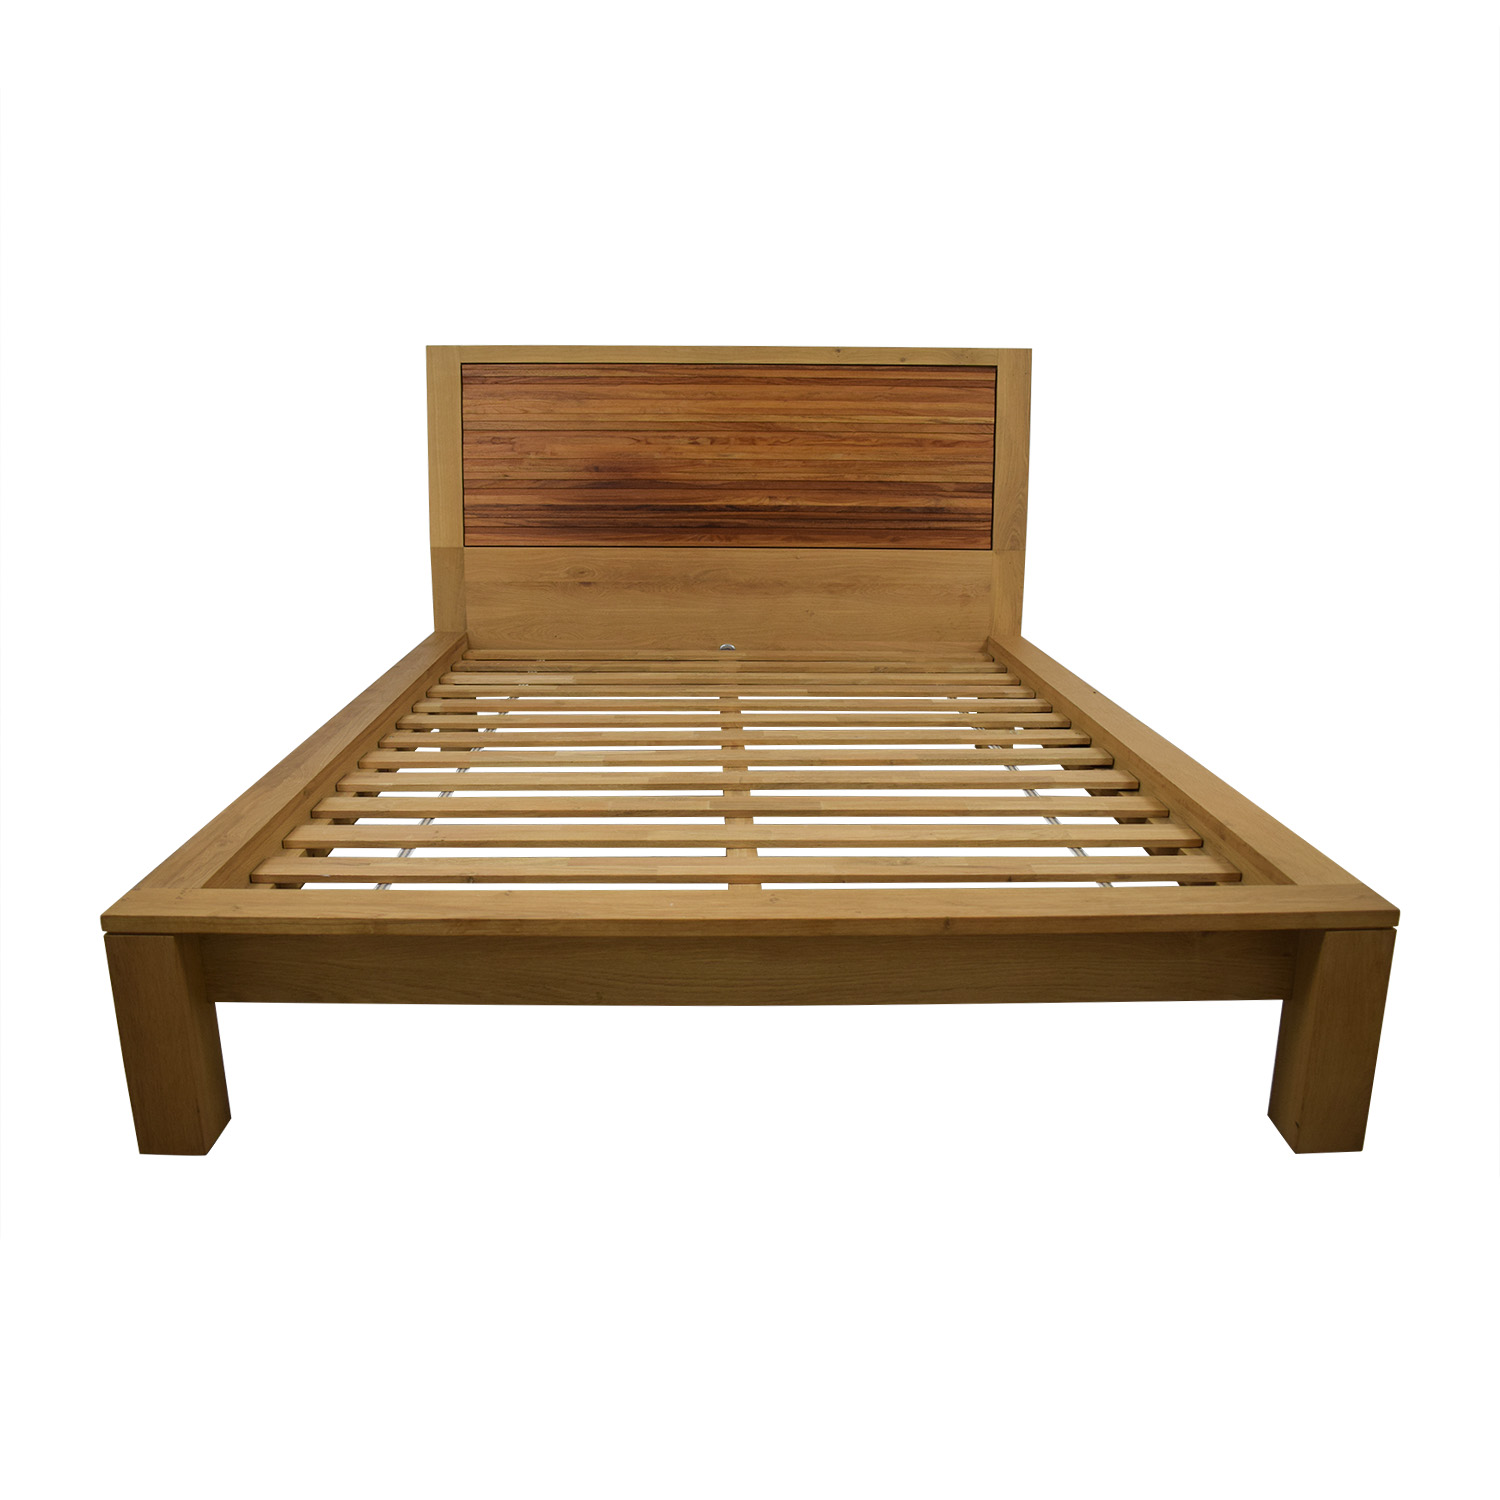 Crate & Barrel Crate & Barrel Sierra Queen Platform Bed Frame dimensions